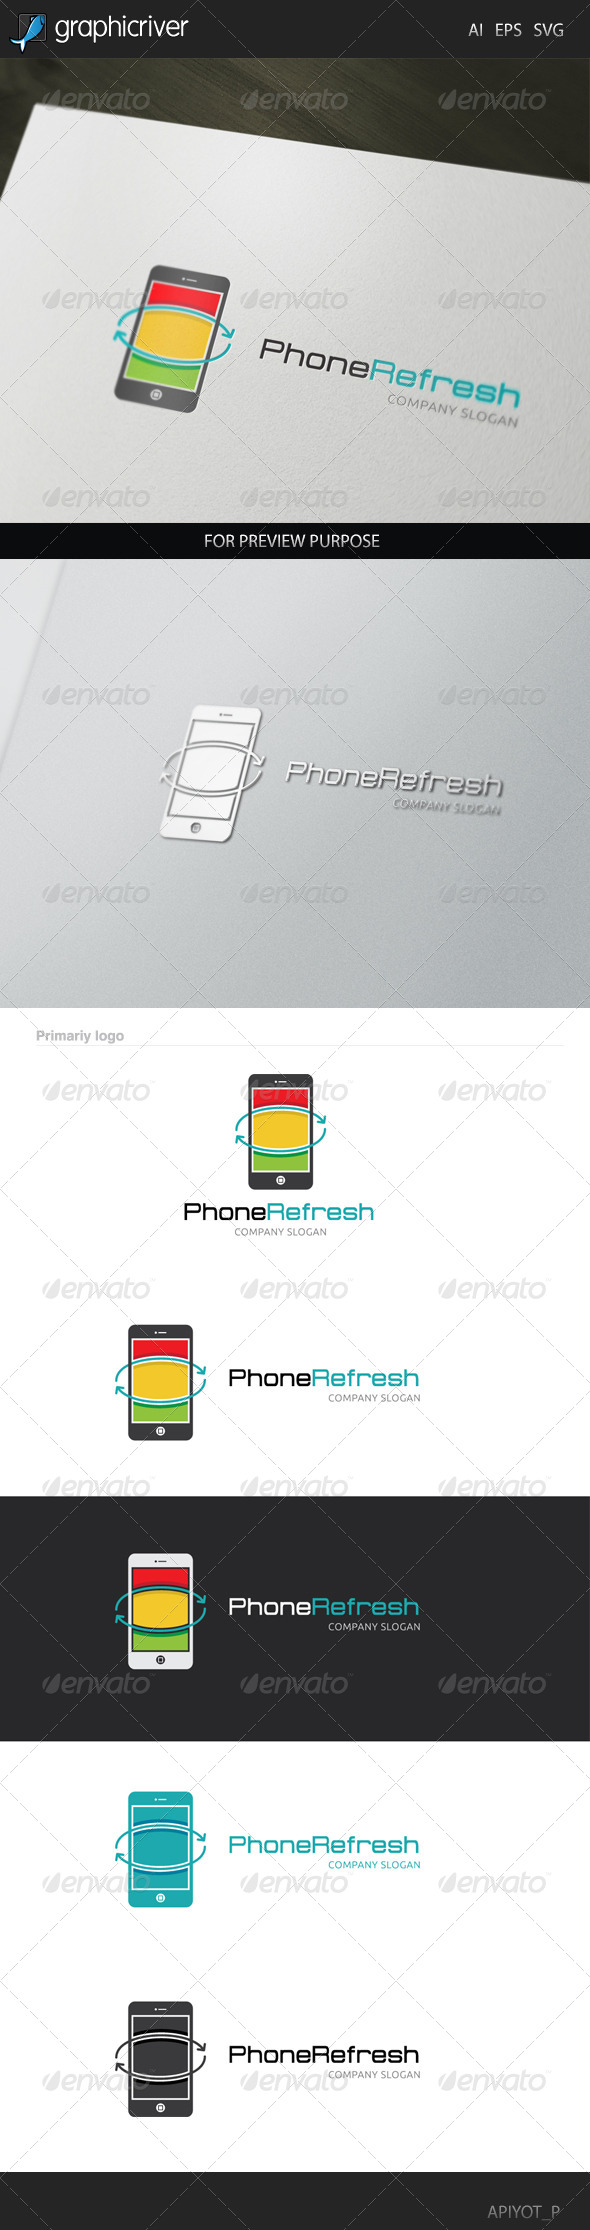 GraphicRiver Phone Refresh Logo 8433332